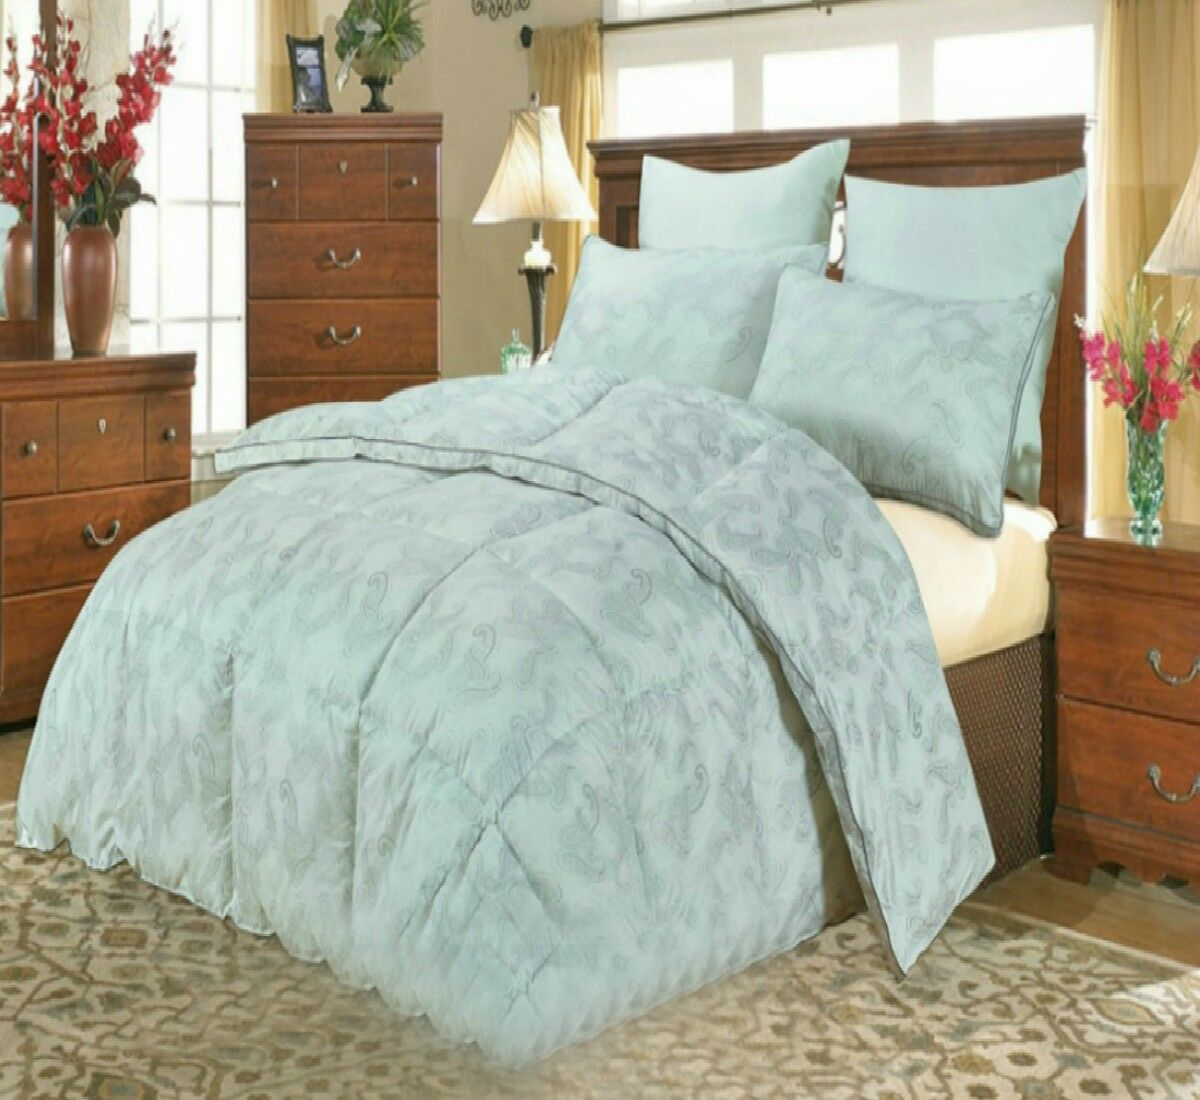 Hotel Quality Duvet Quilt Beautiful Hollow Fiber Soft Box Stitched Gusset Filled